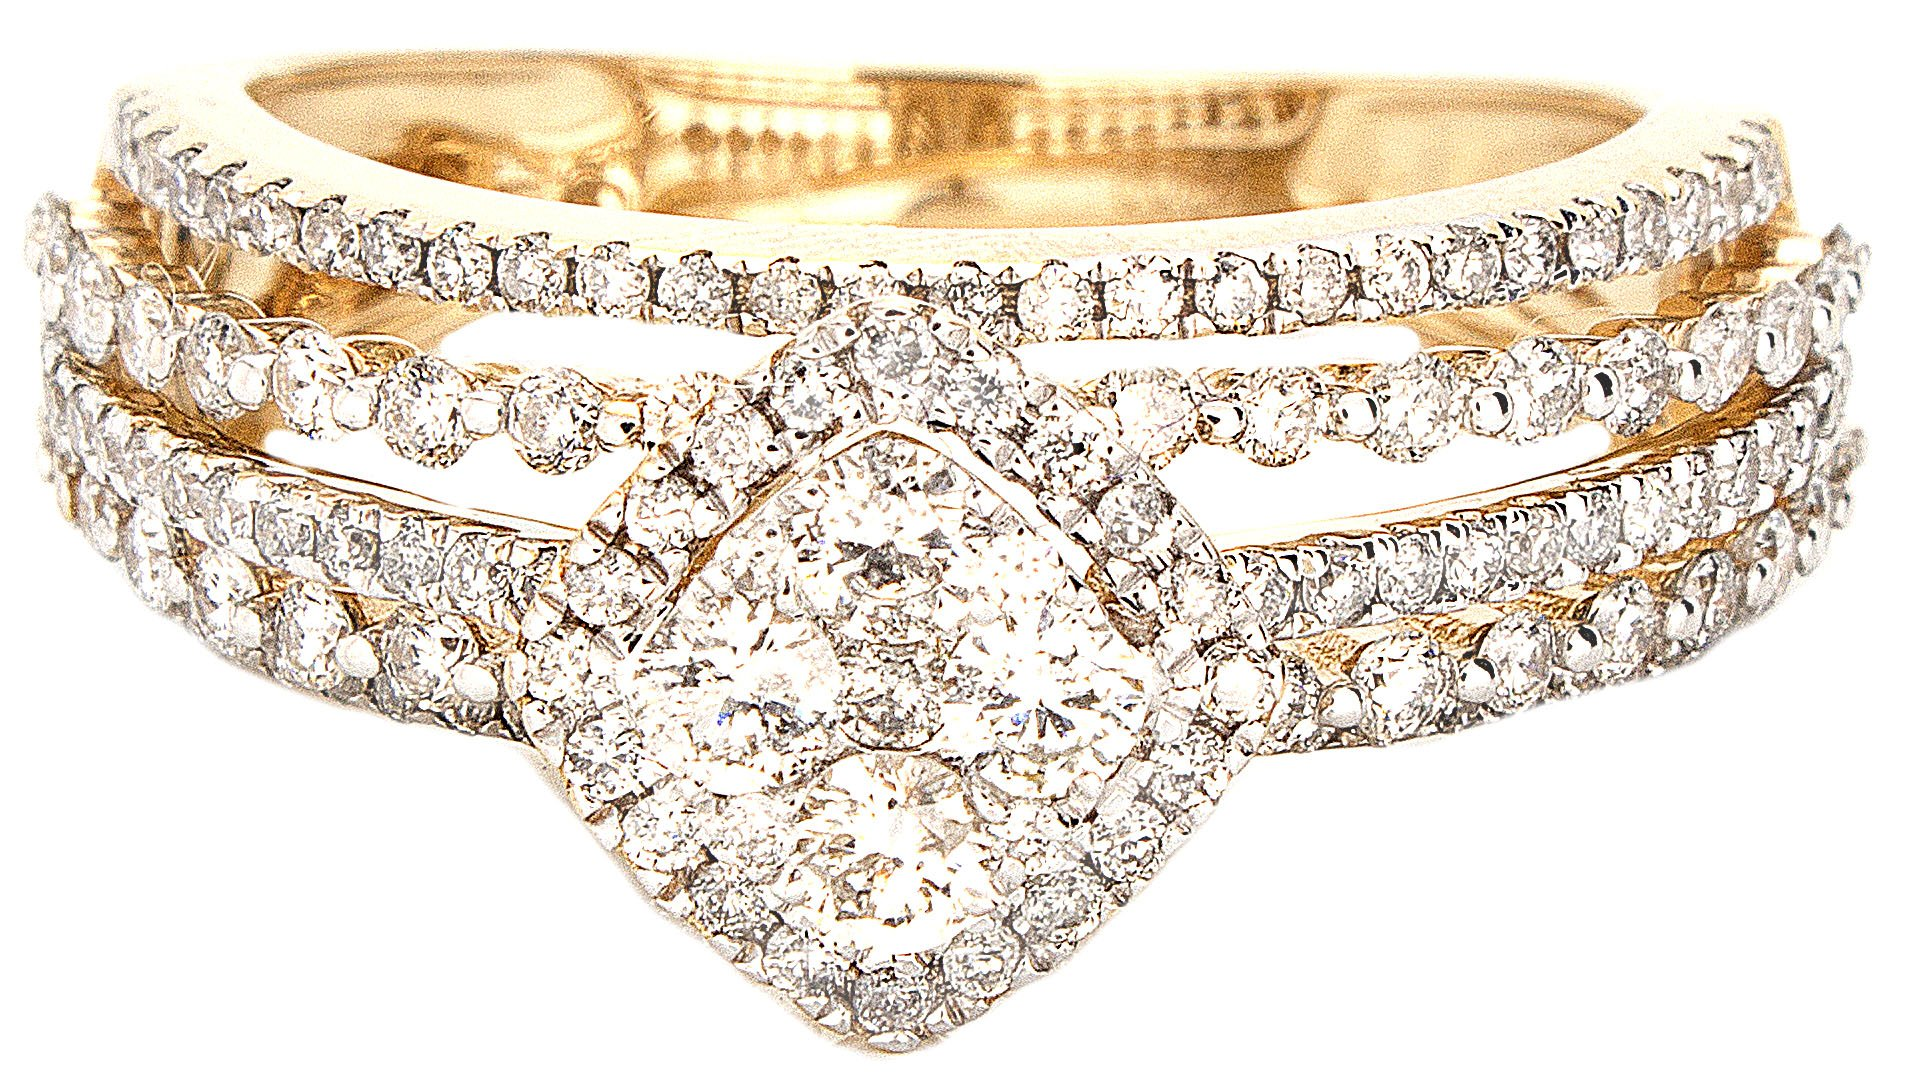 1.00ctw Excellent Cut Round Diamond (H-1 color, i1 - i2 clarity) in 14k Gold Fashion Ring